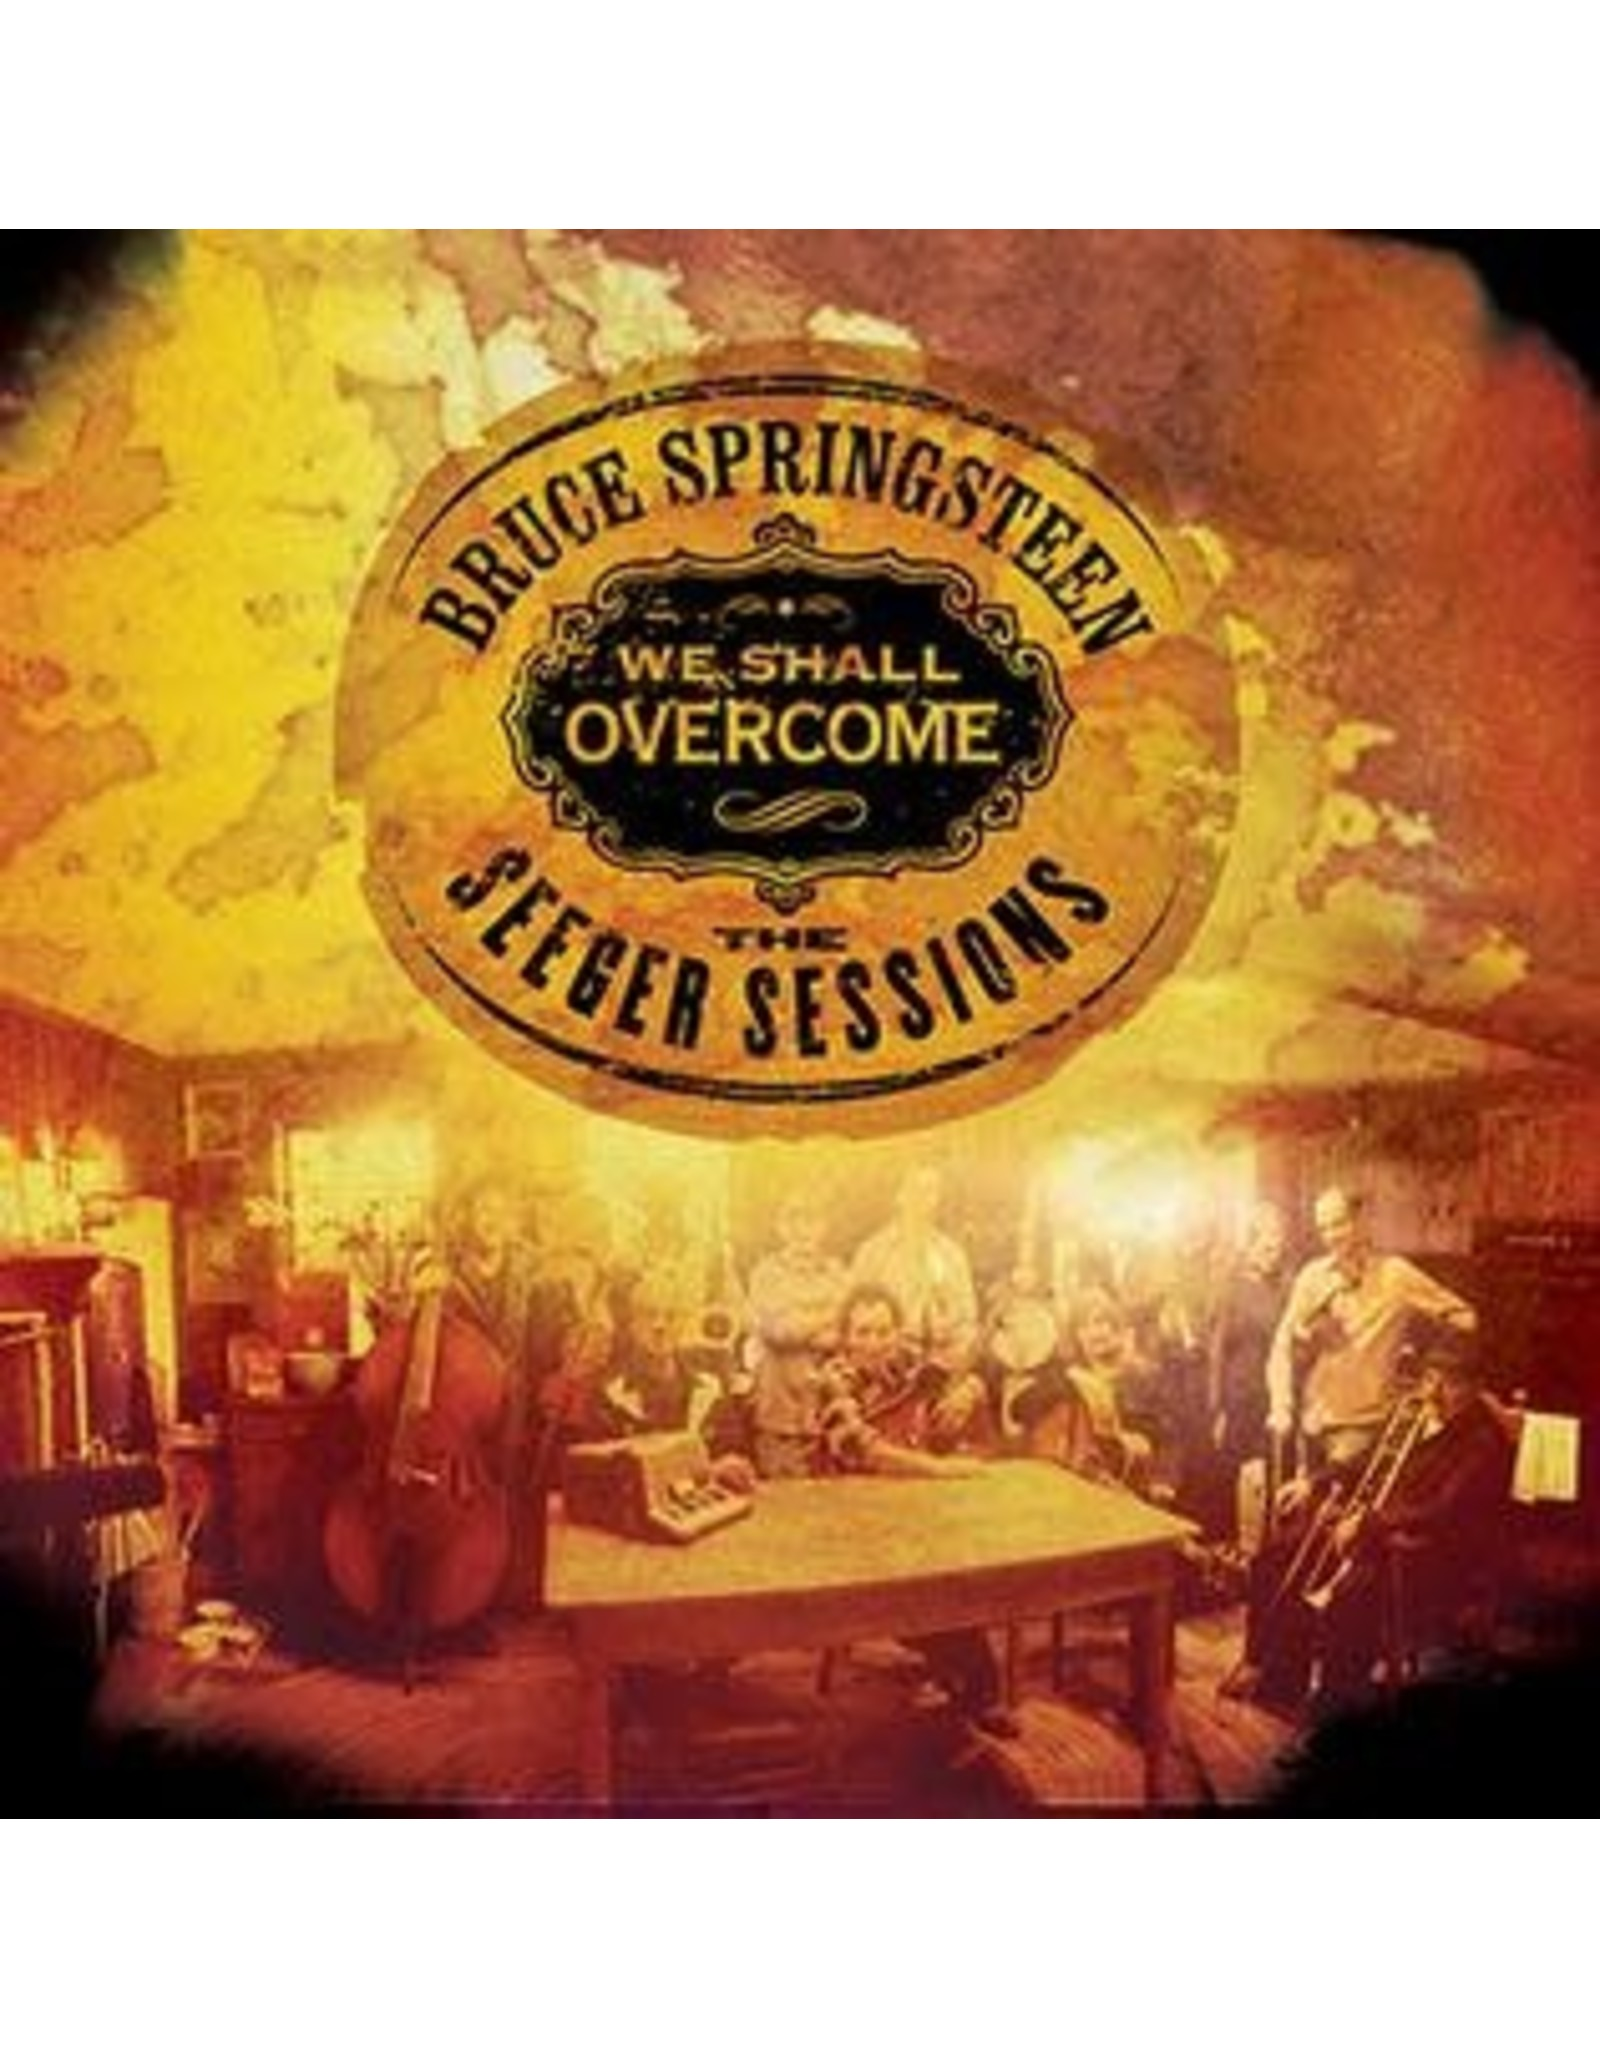 Bruce Springsteen - We Shall Overcome: Seeger Sessions